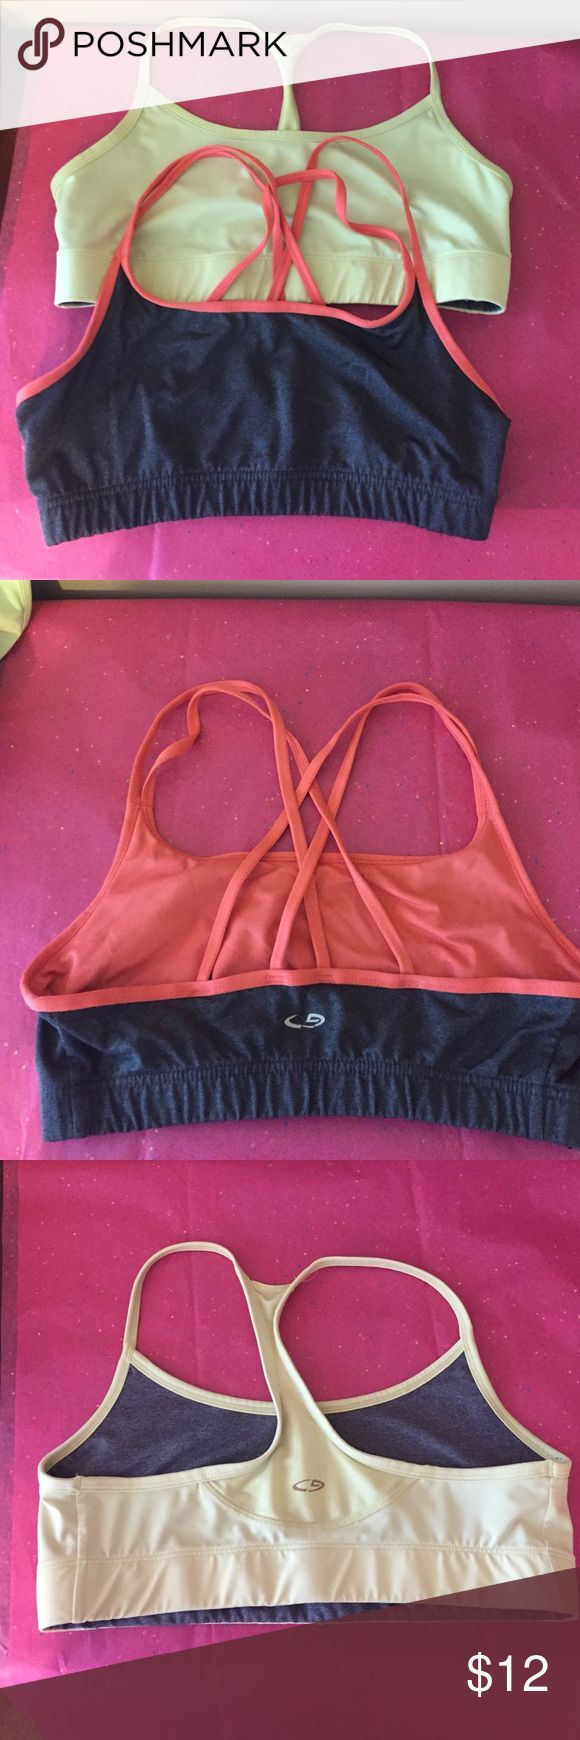 Bundle of two champion sports bras! Small! Bundle of two champion sports bras! Small! One is gray and orange and one is chartreuse and gray and that one is reversible!  Used but good condition! Champion Intimates & Sleepwear Bras